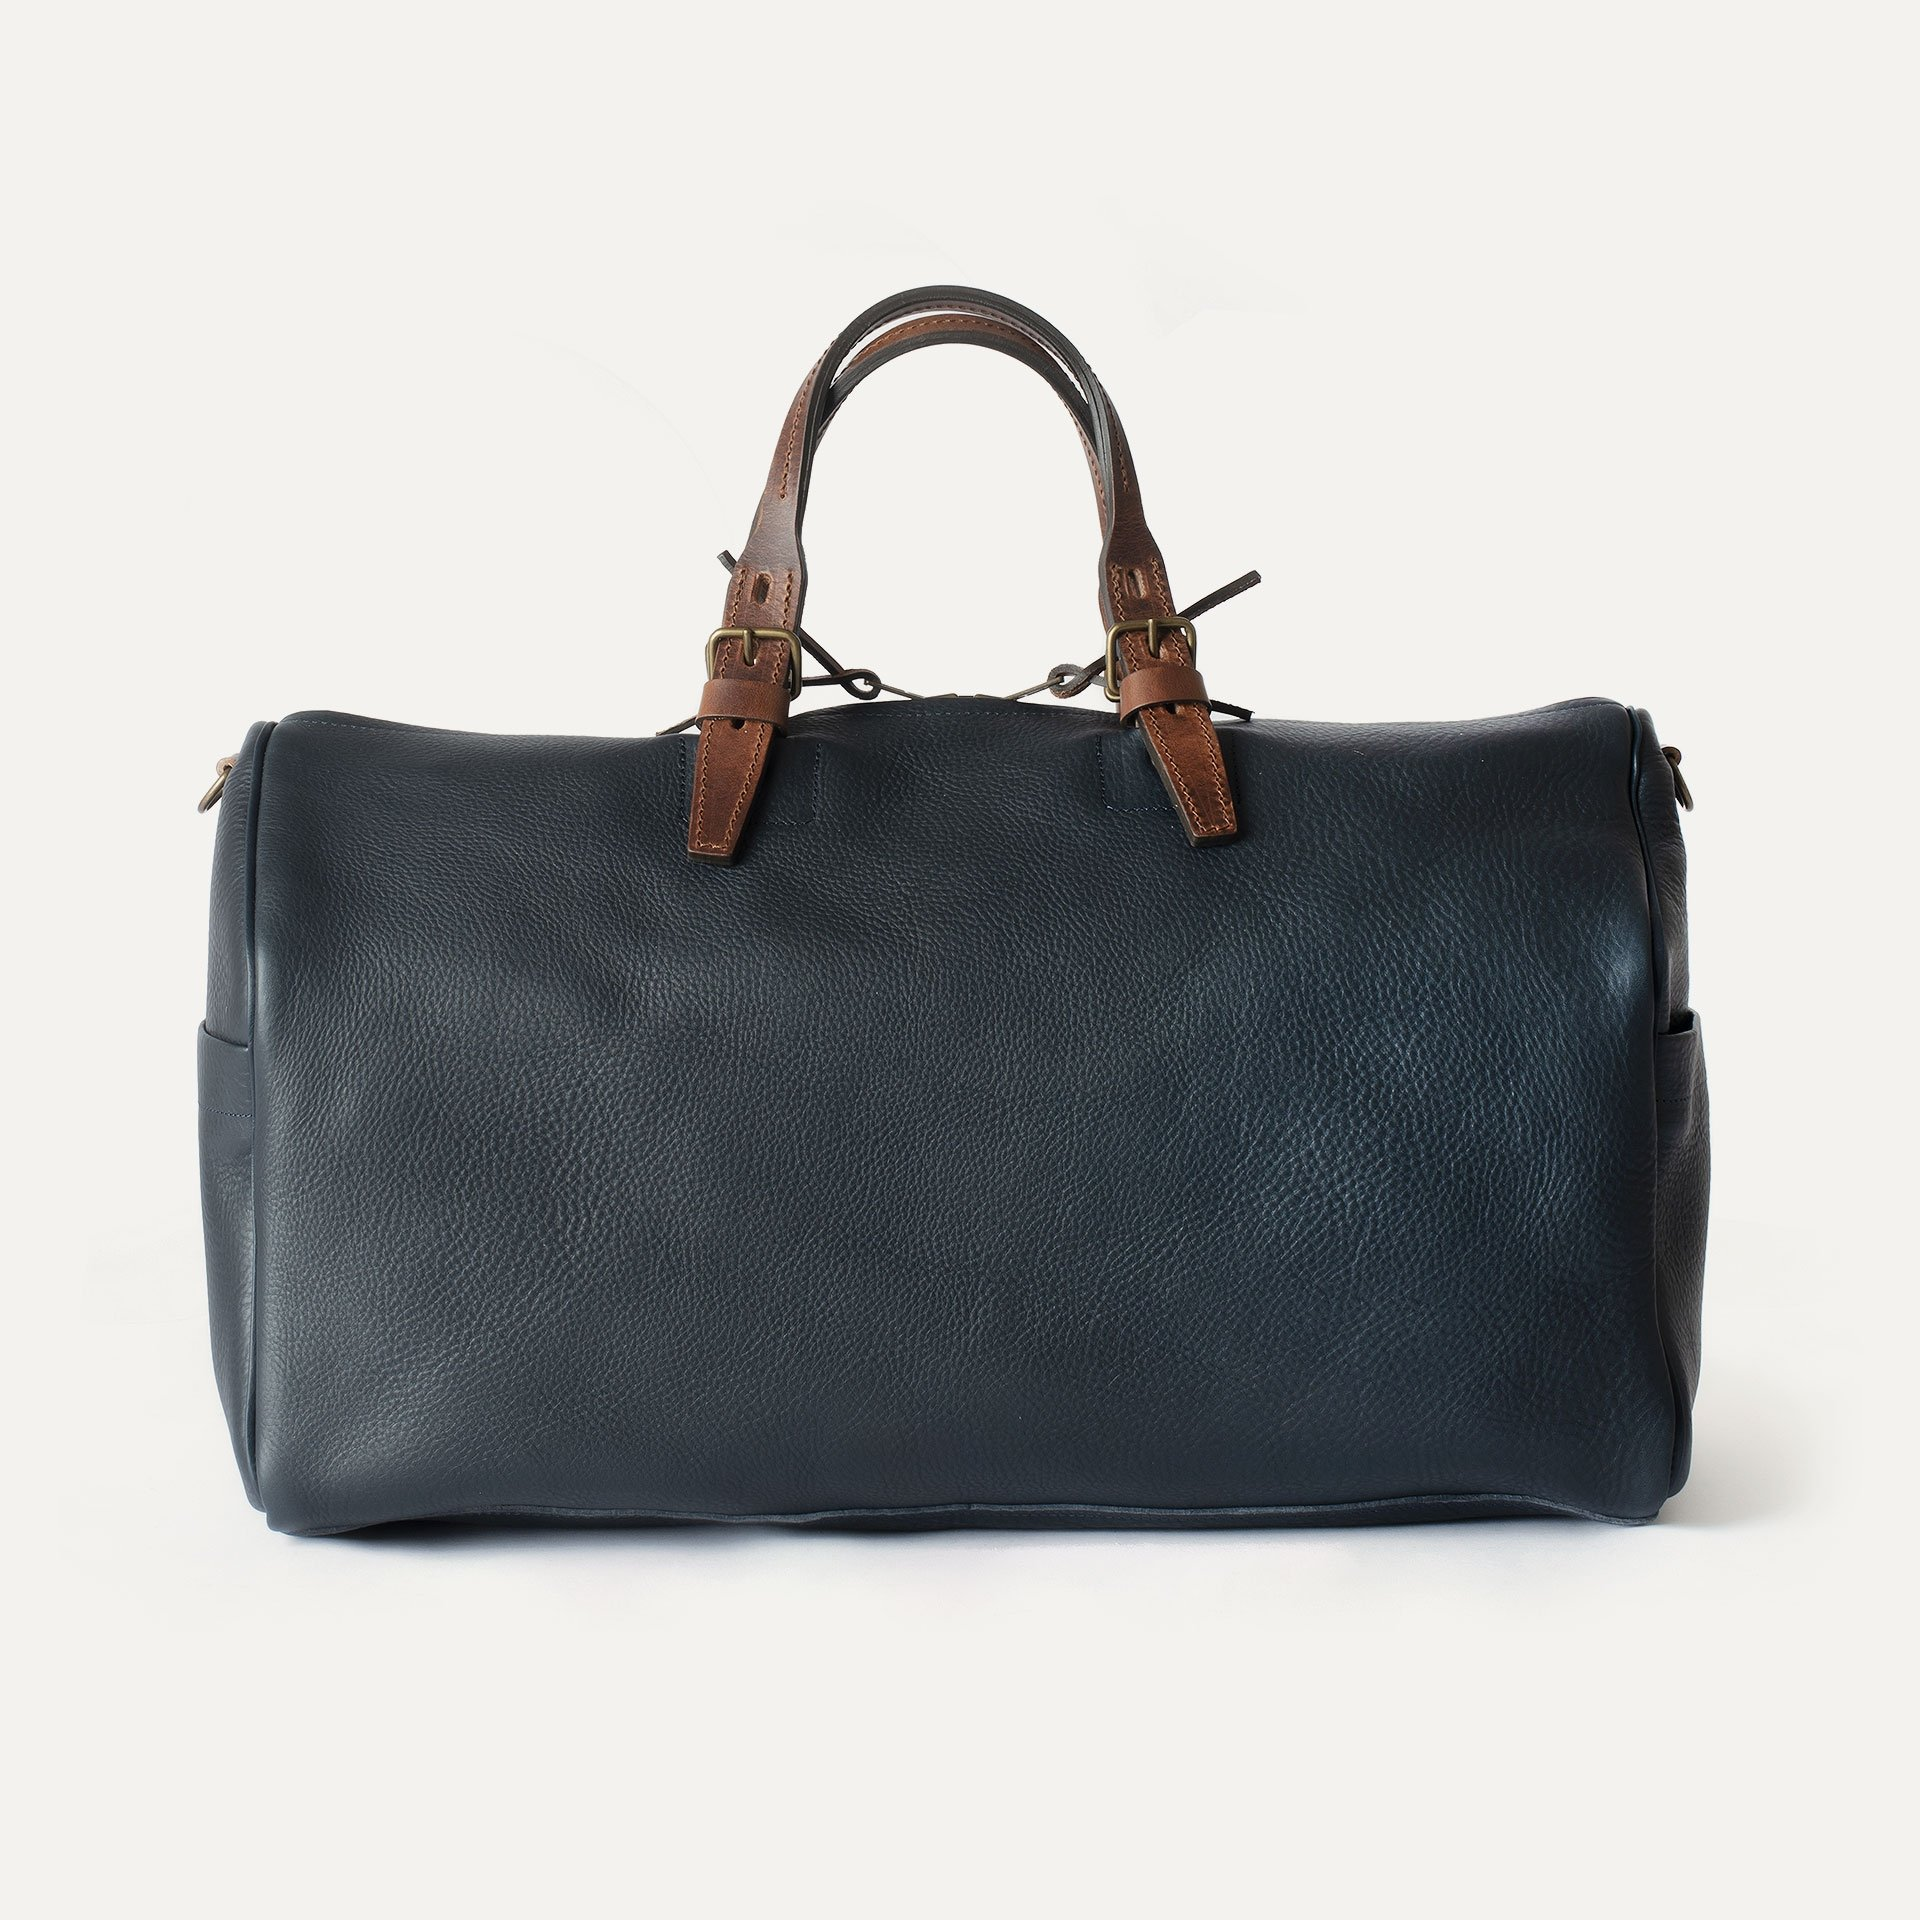 Hobo Travel bag - Navy Blue (image n°3)